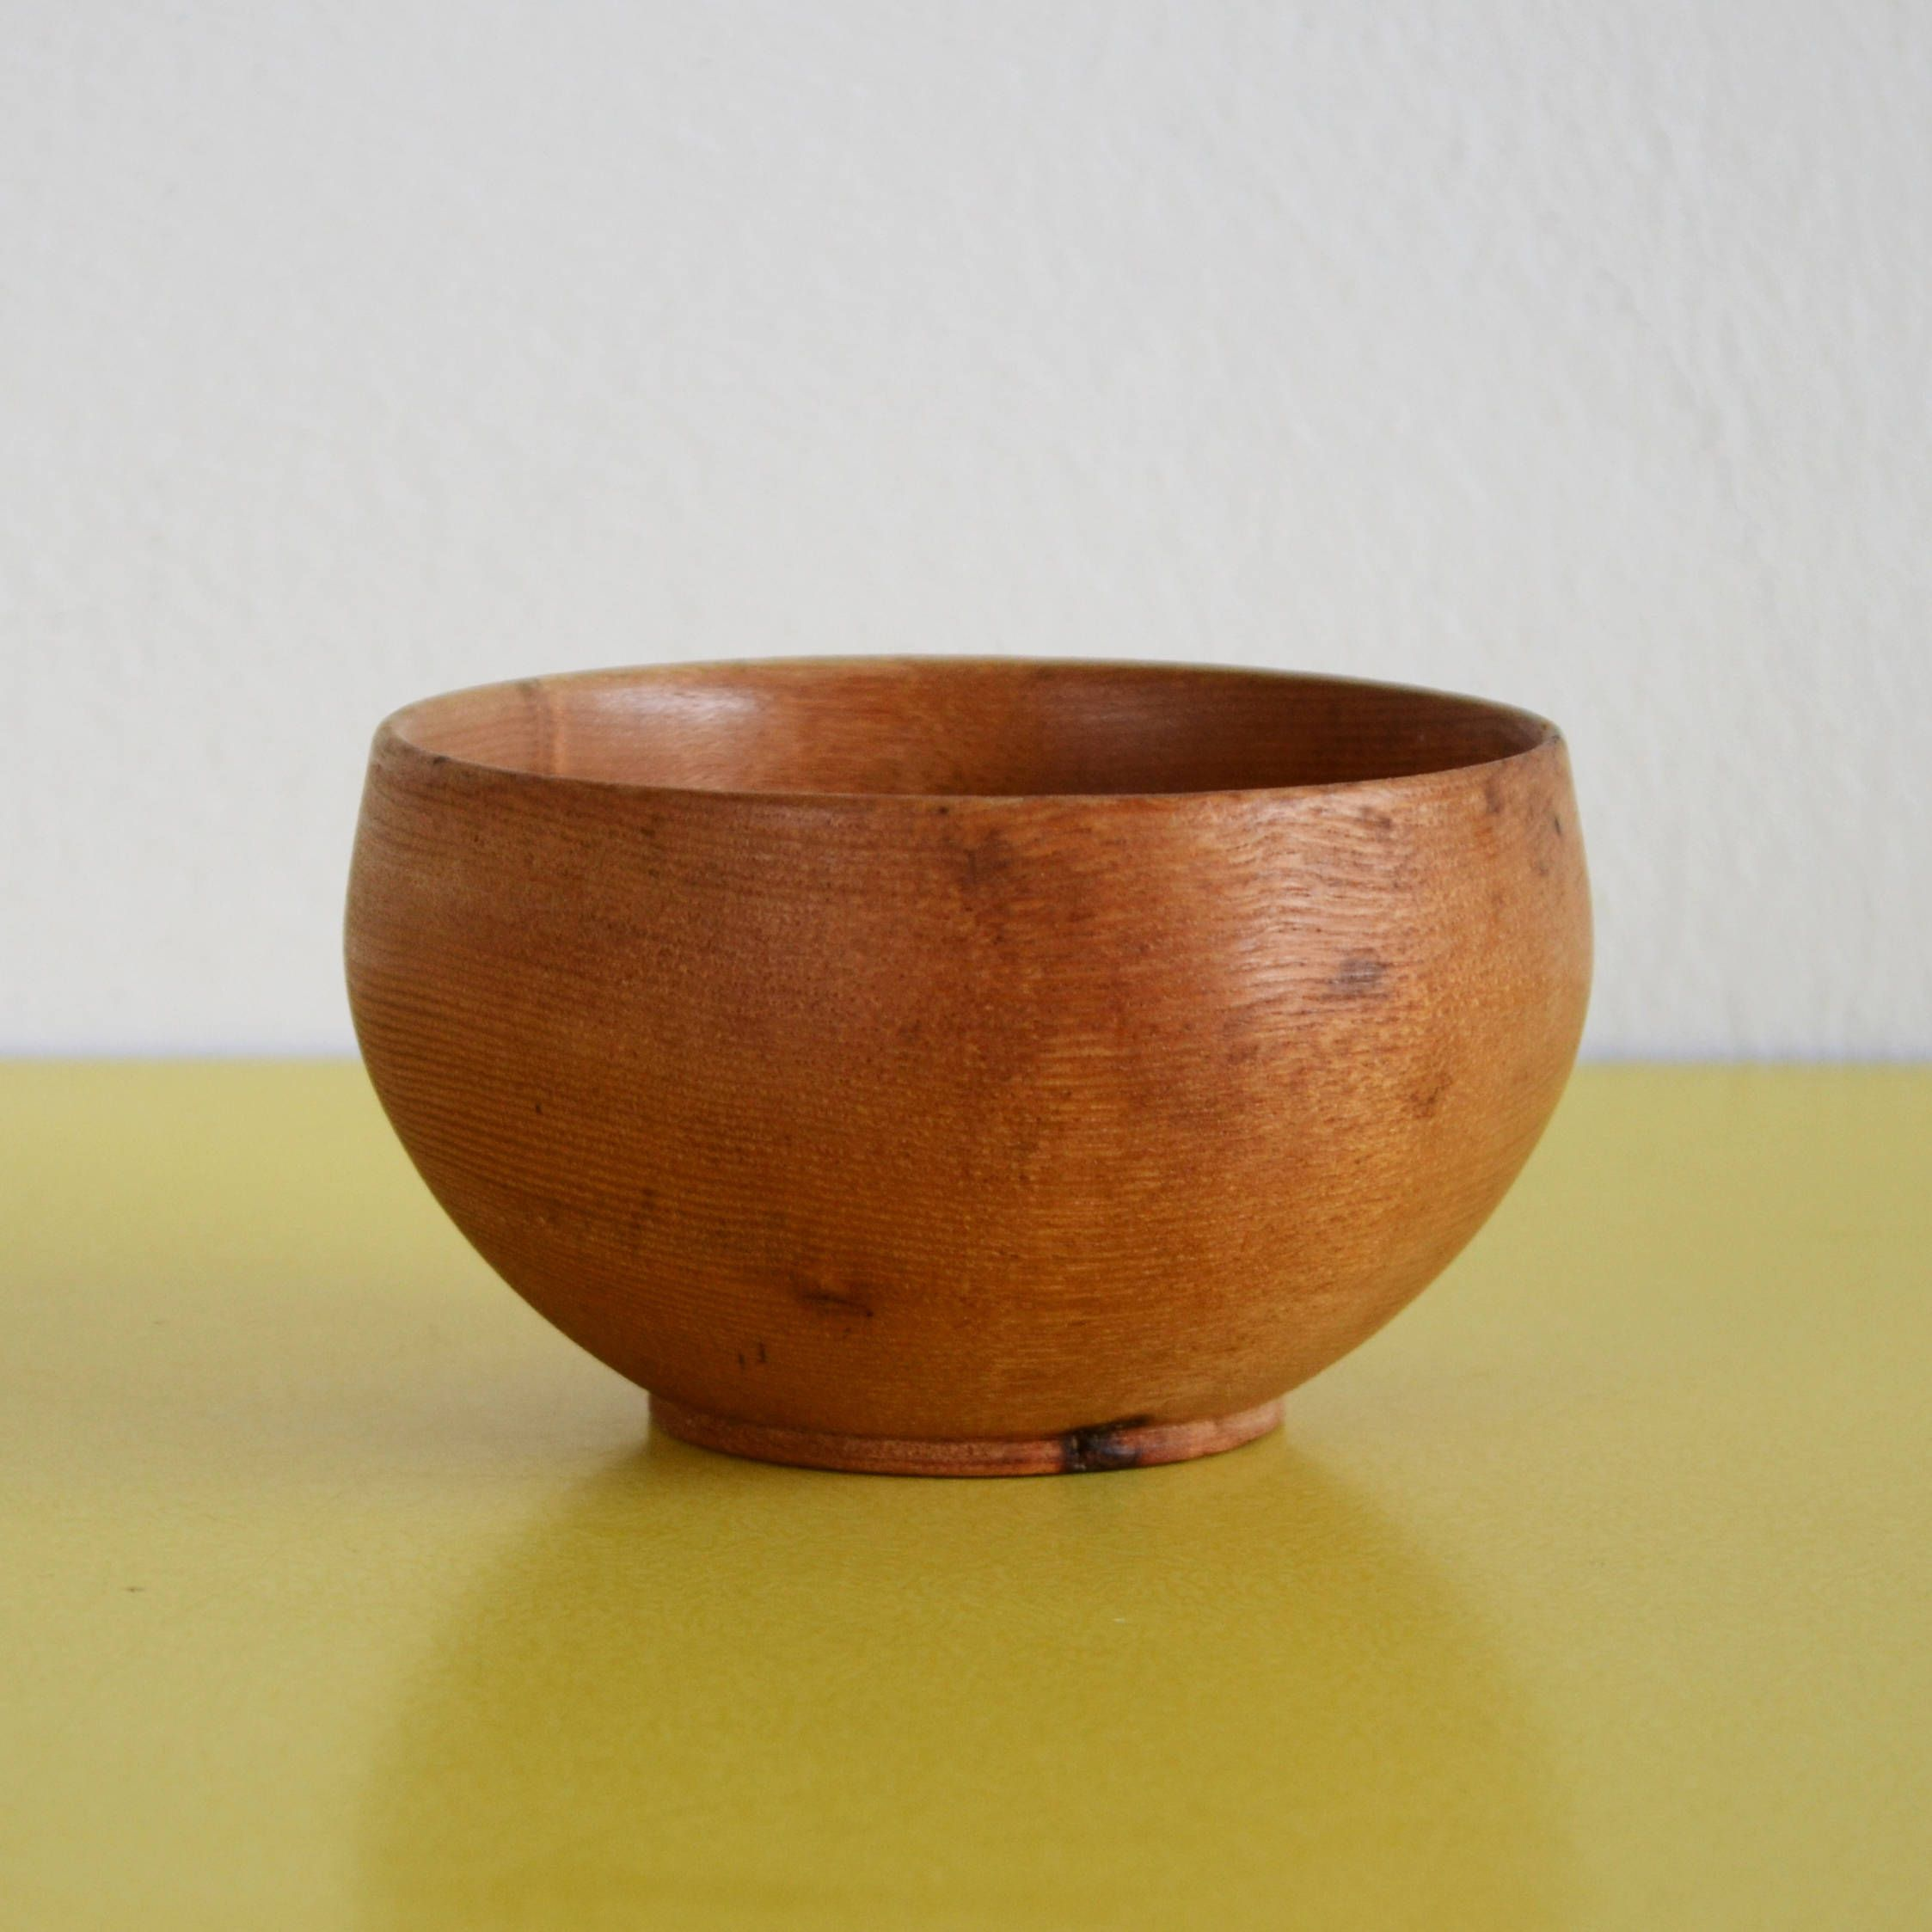 Vintage wooden bowl small rustic wooden trinket dish bohemian wooden decorative bowl rustic wood bowl by littleyellowtable on etsy